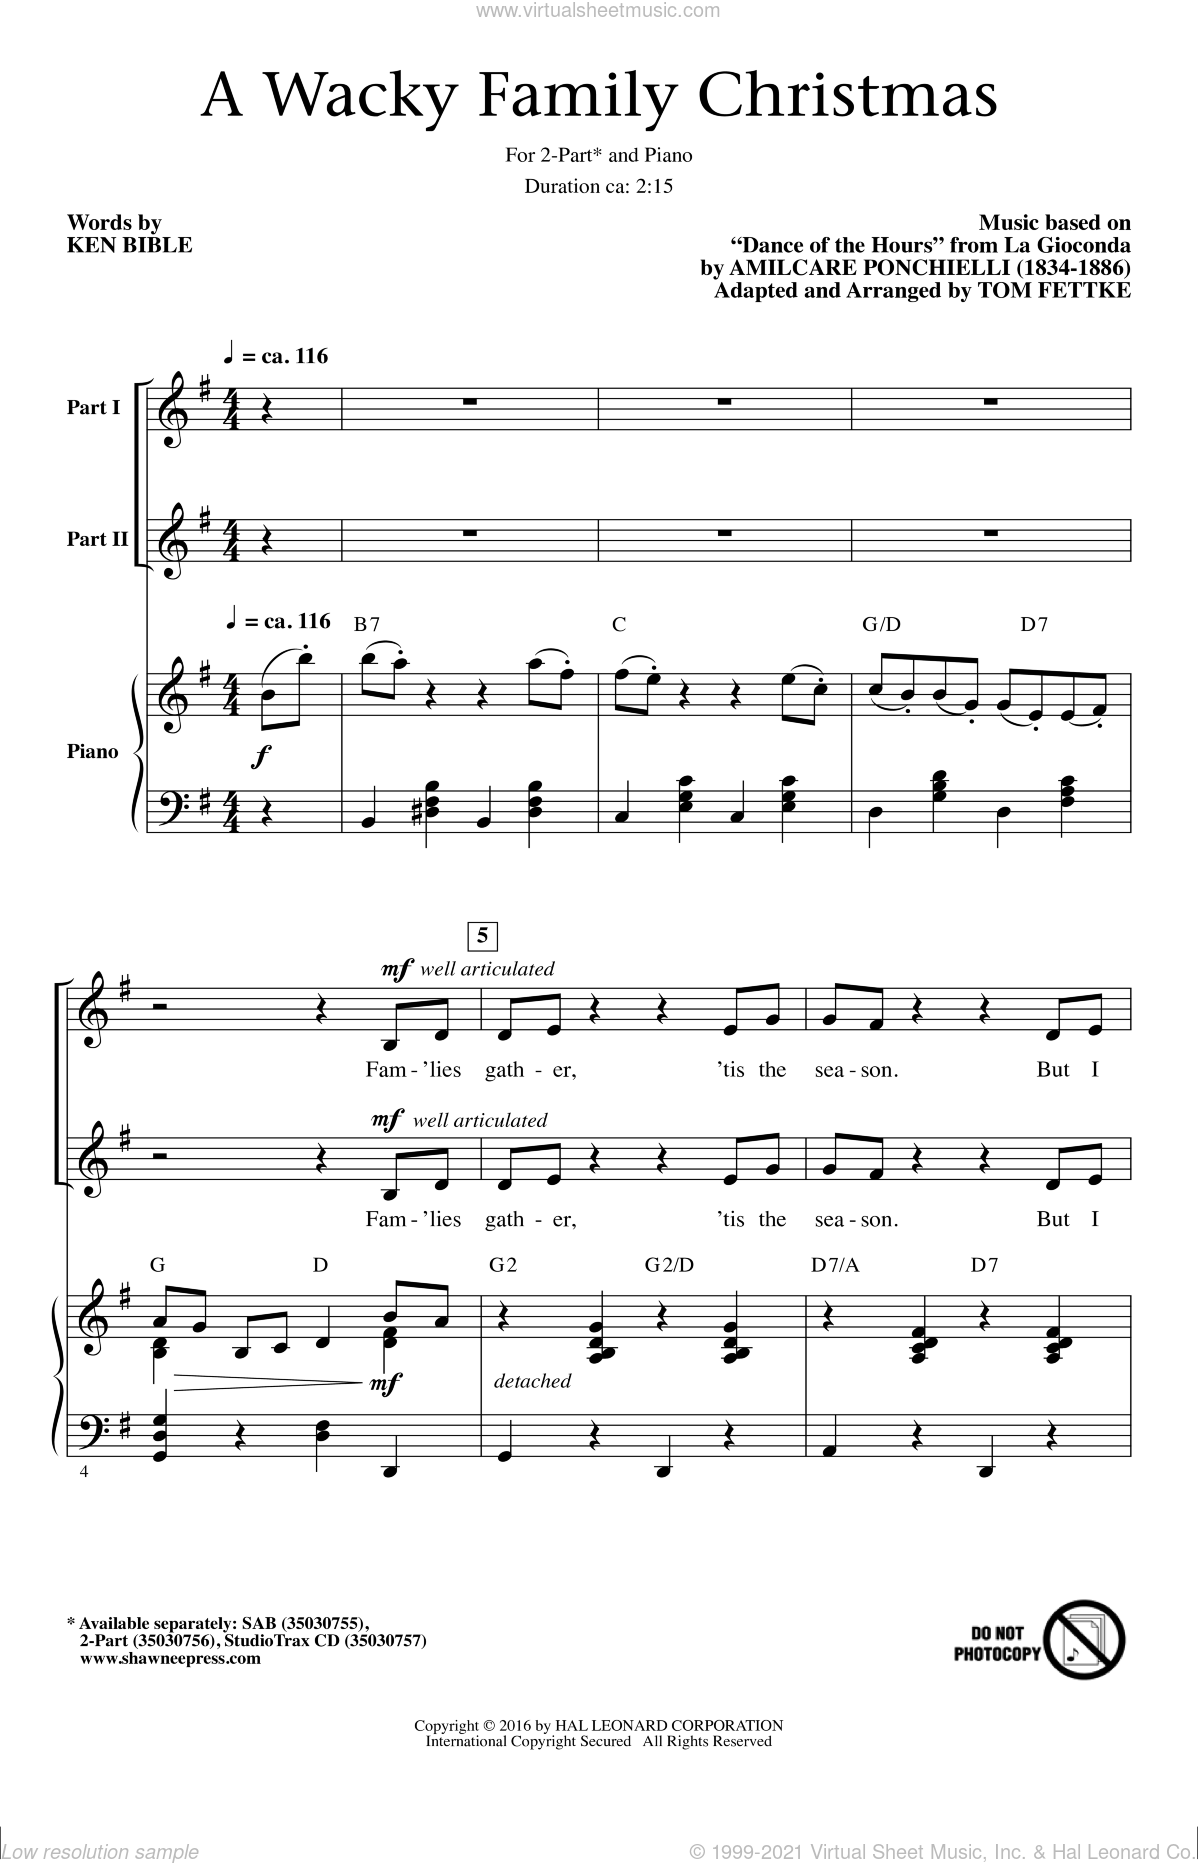 A Wacky Family Christmas sheet music for choir (2-Part) by Amilcare Ponchielli, Tom Fettke and Ken Bible, intermediate duet